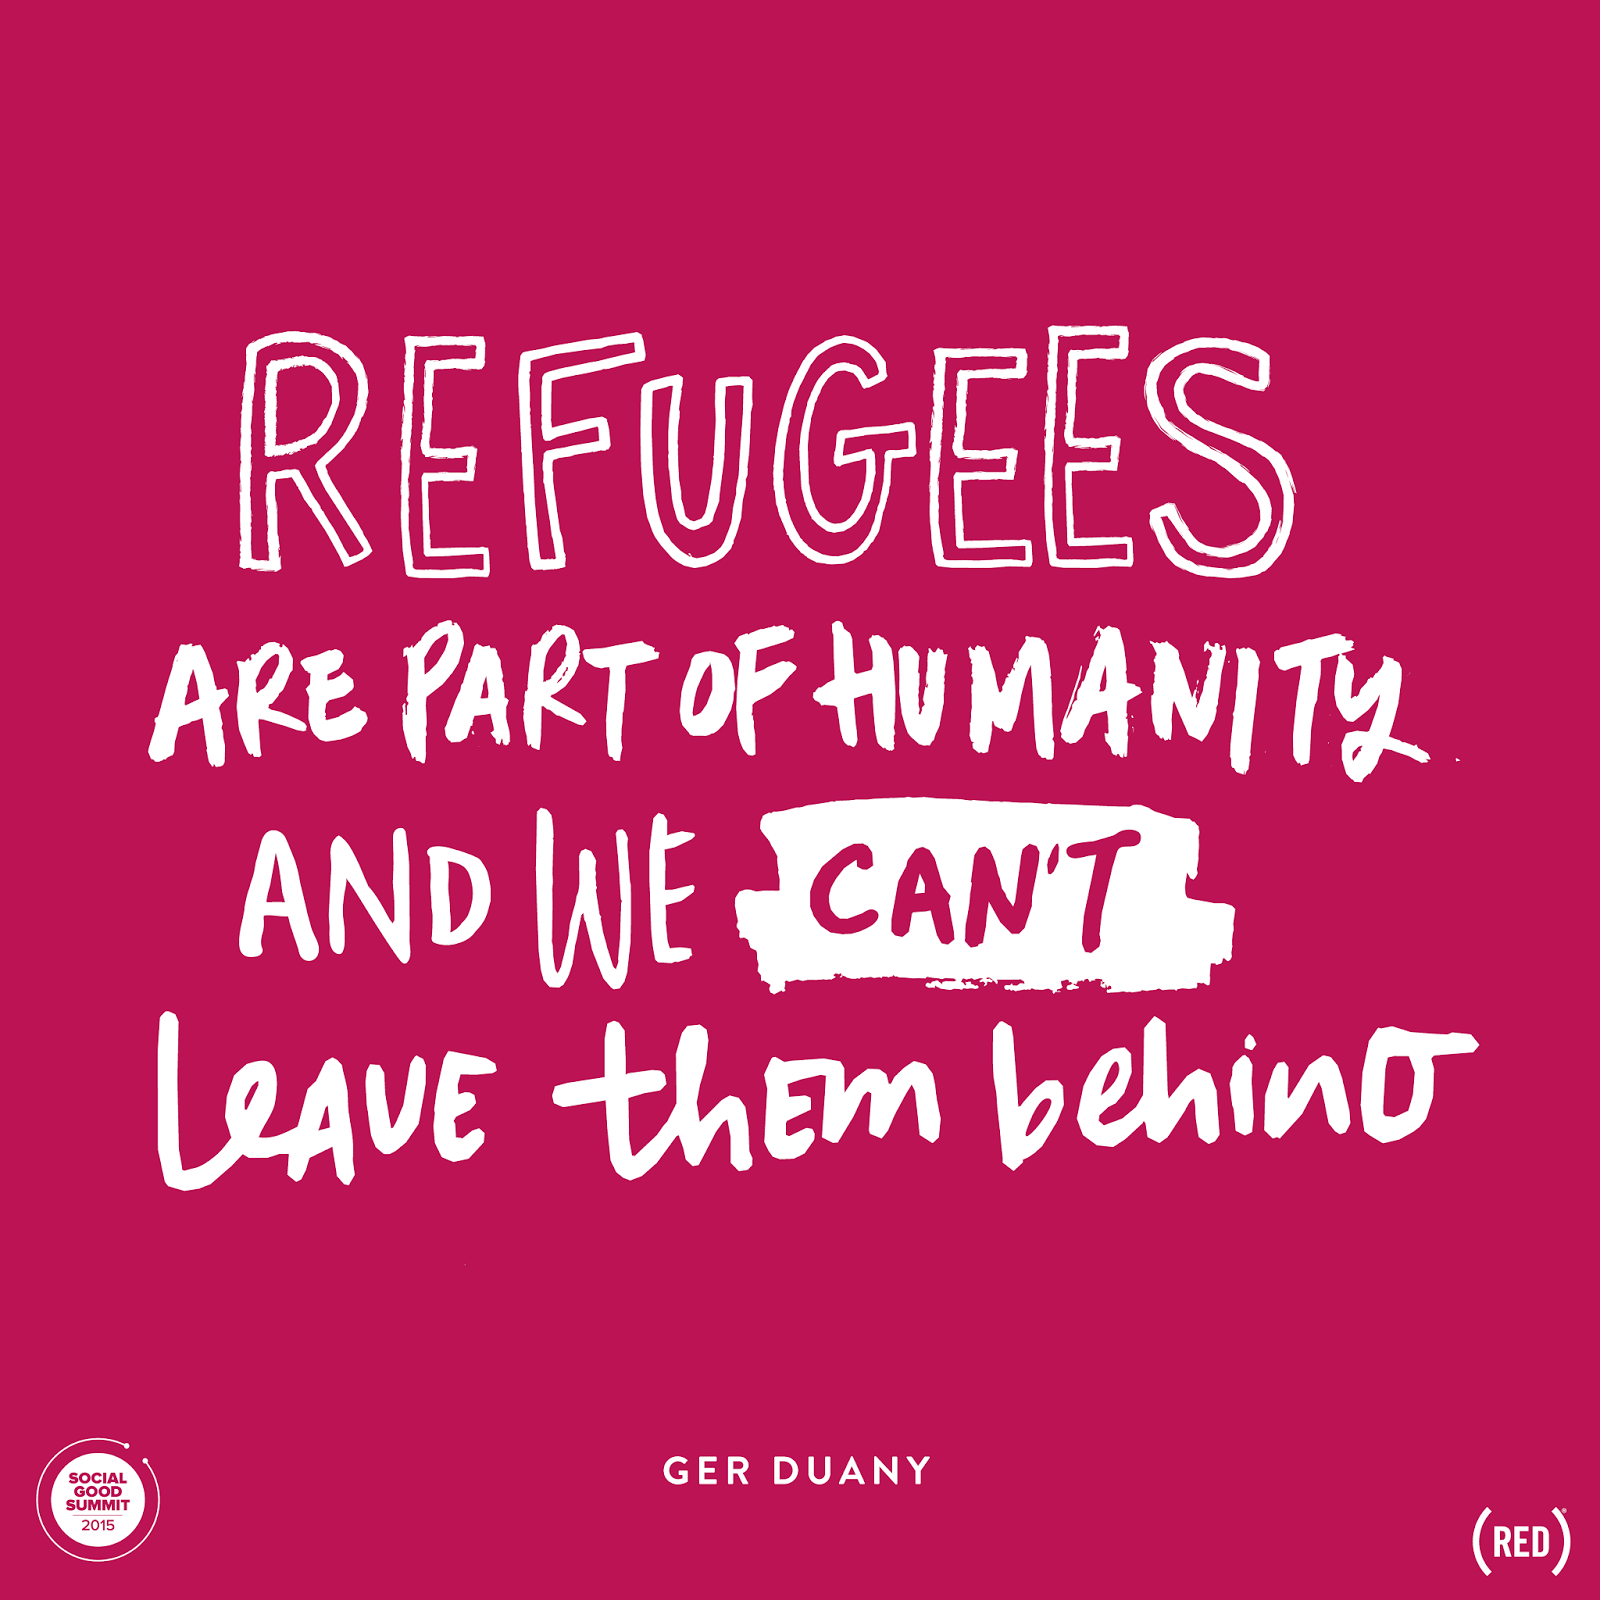 Refugee Quotes Fascinating Refugees The Top Story Of The Summit  Genun